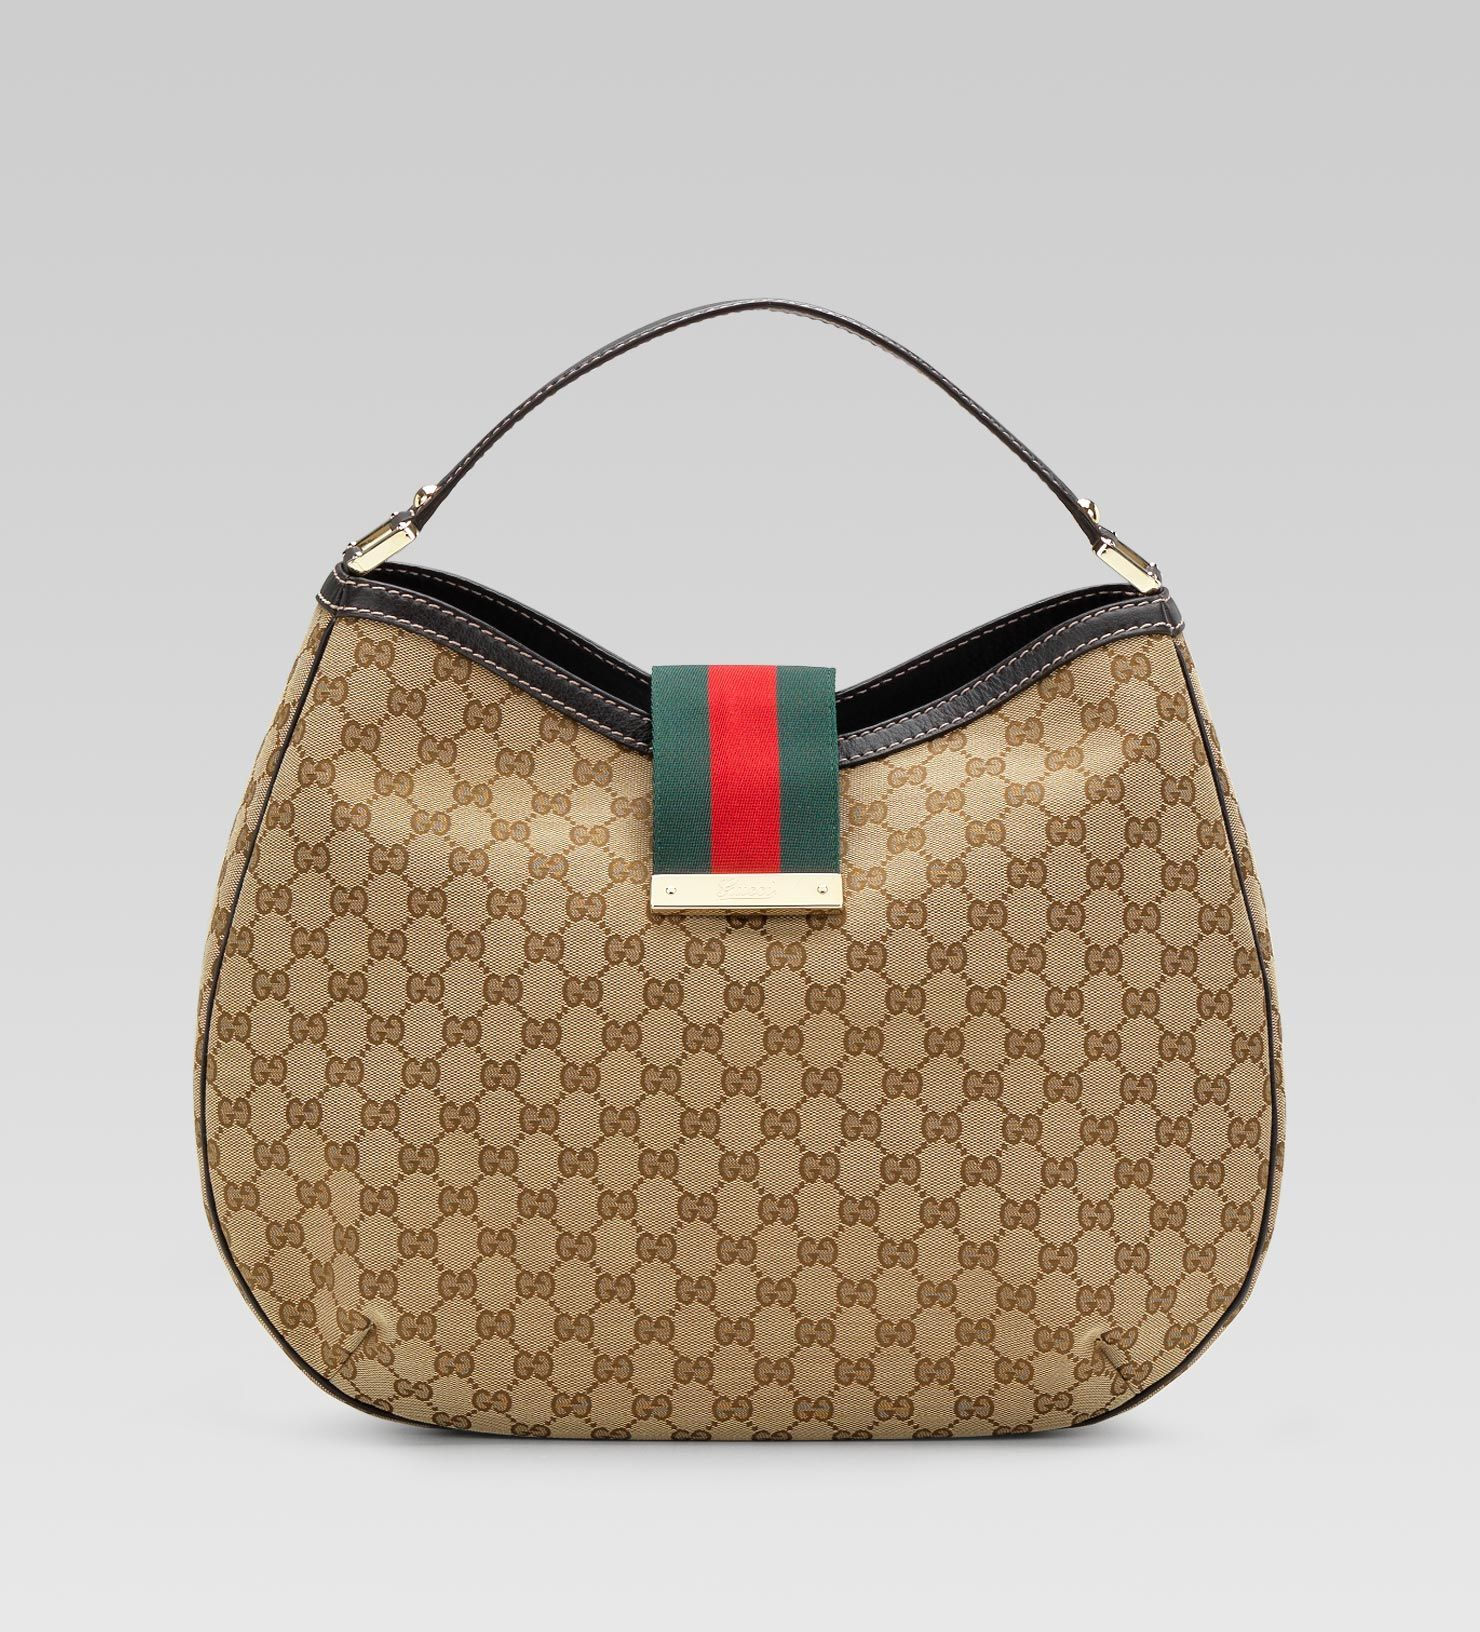 fe6996d0128 Second Gucci bag - Ladies web - large hobo with Gucci script logo    signature snap closure